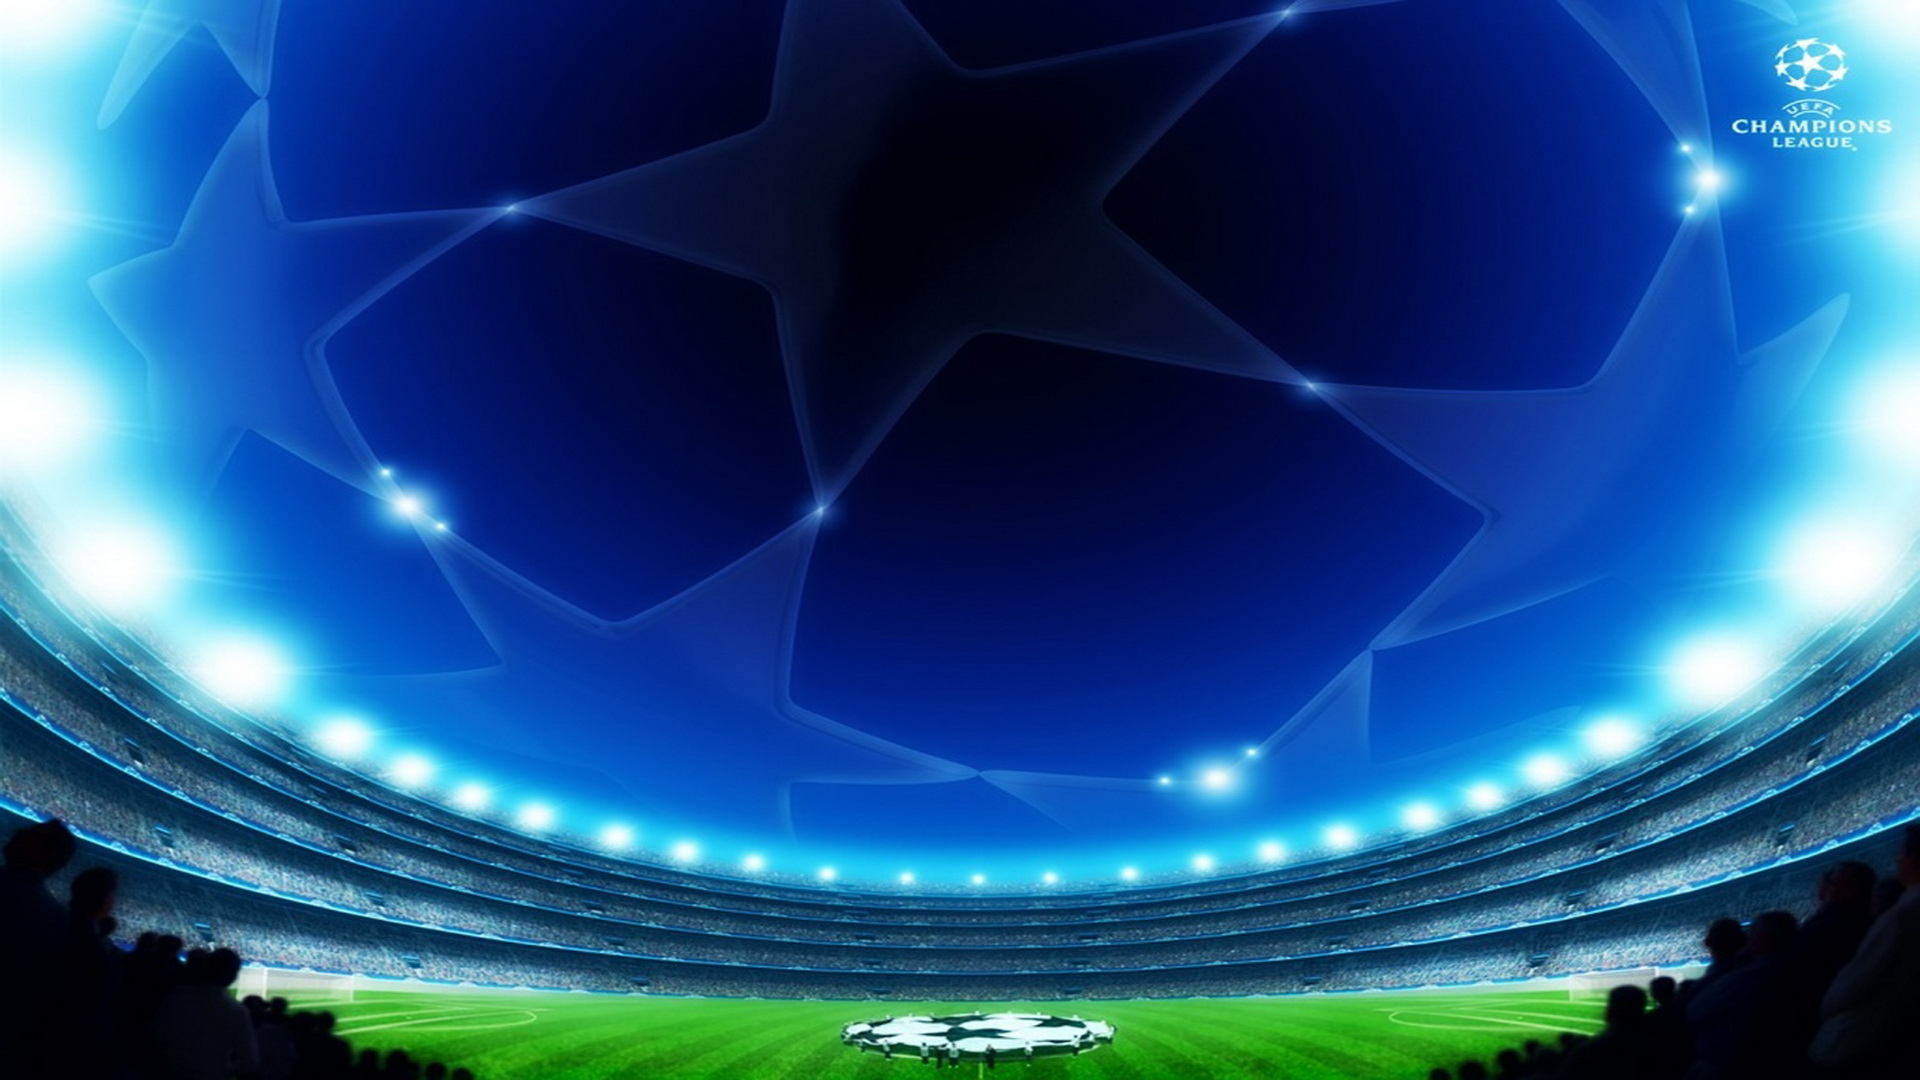 uefa champions league high wallpapers Sport Wallpaper HD 1920x1080